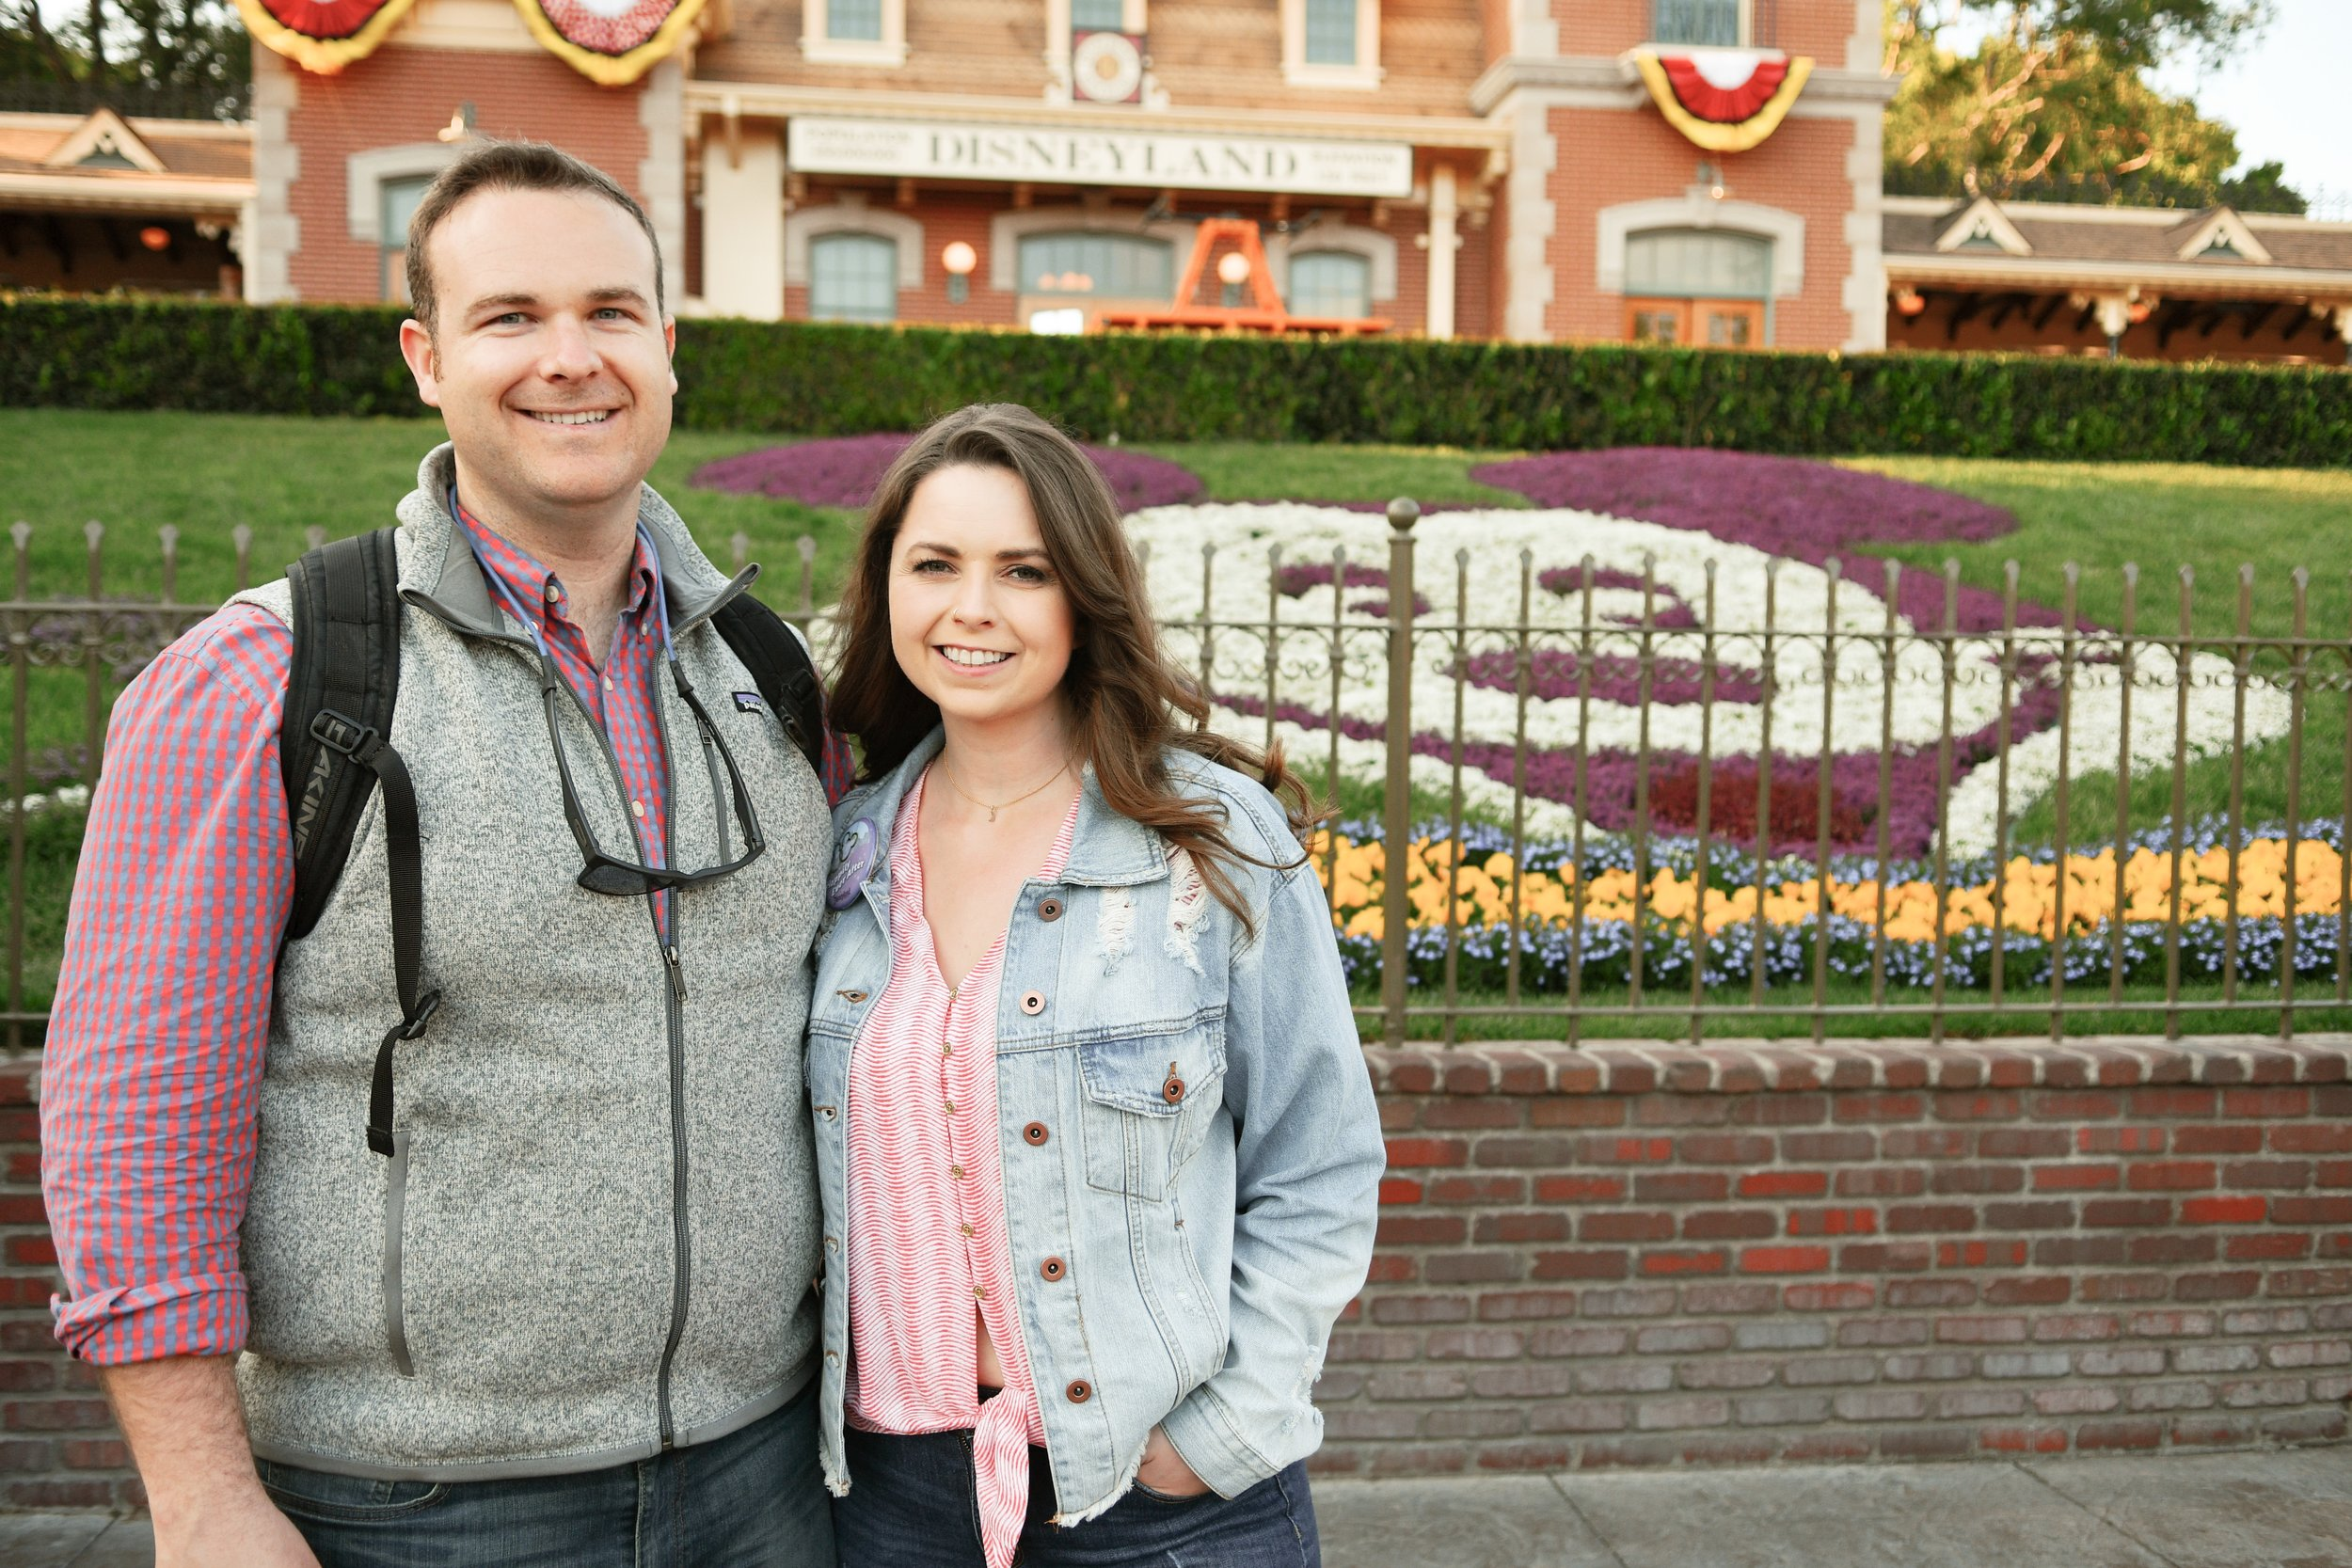 One of our photos taken by a Disneyland photographer.